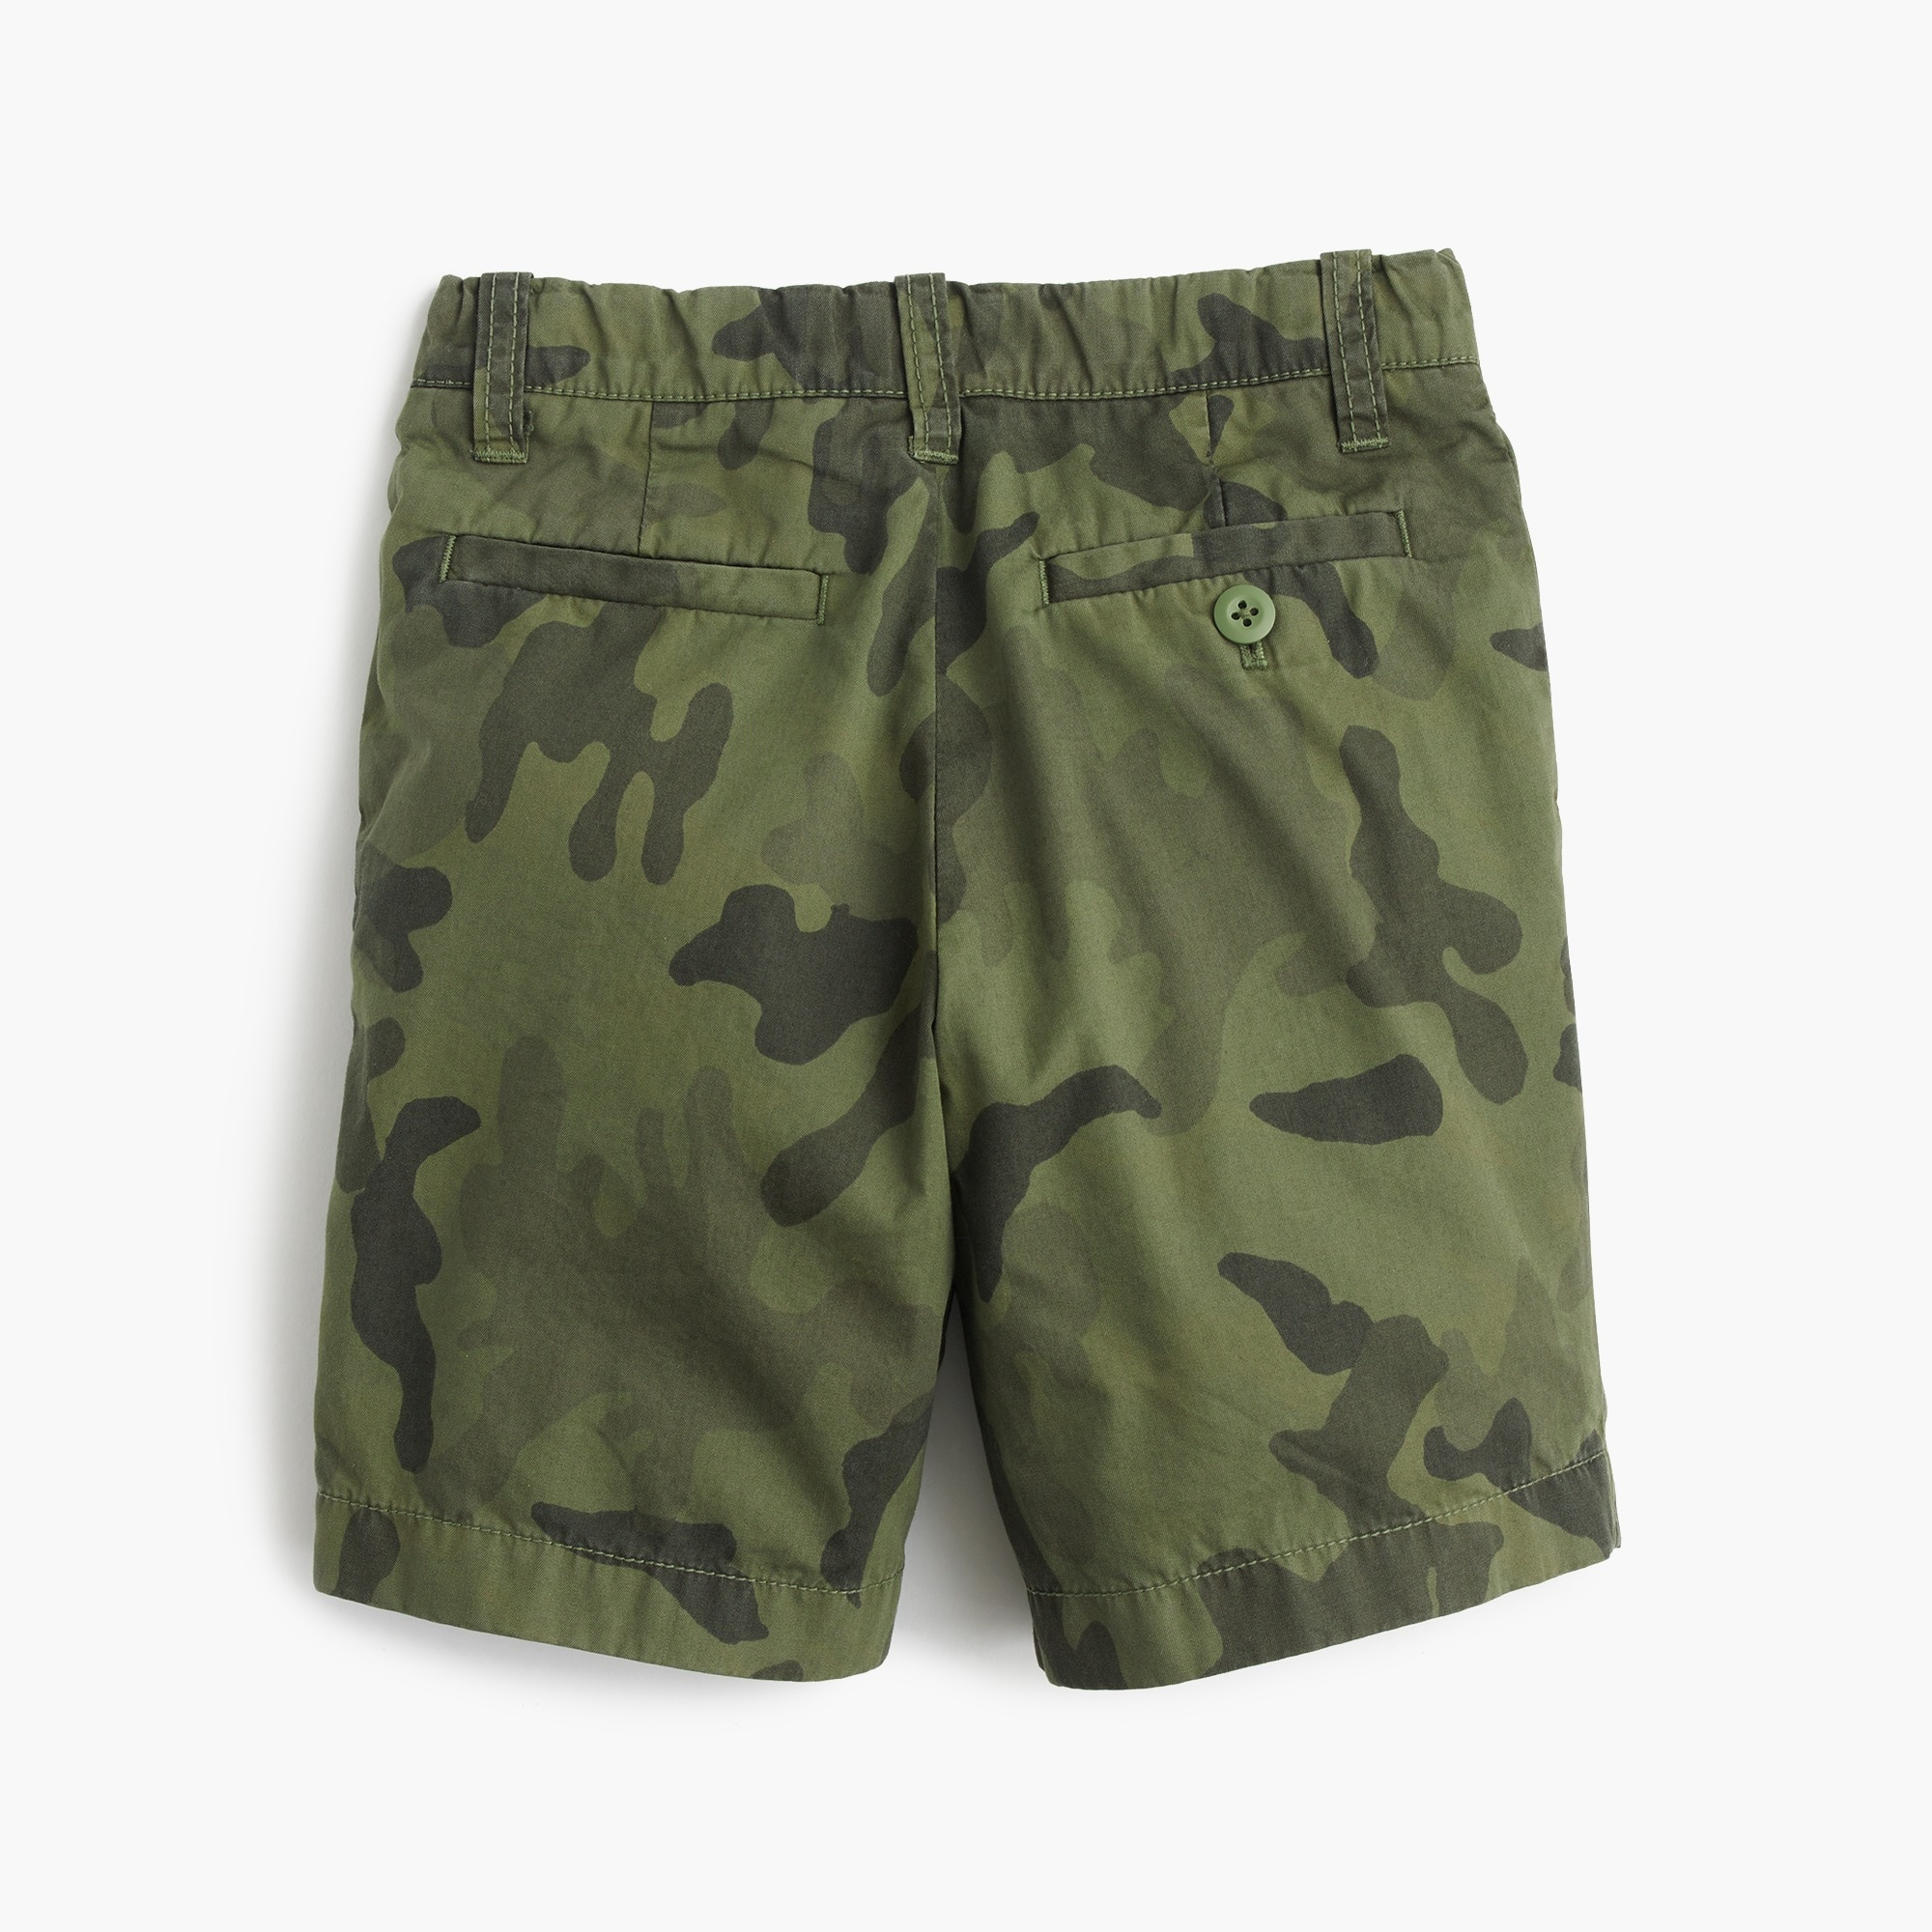 Boys' camo Stanton short in lightweight garment-dyed chino